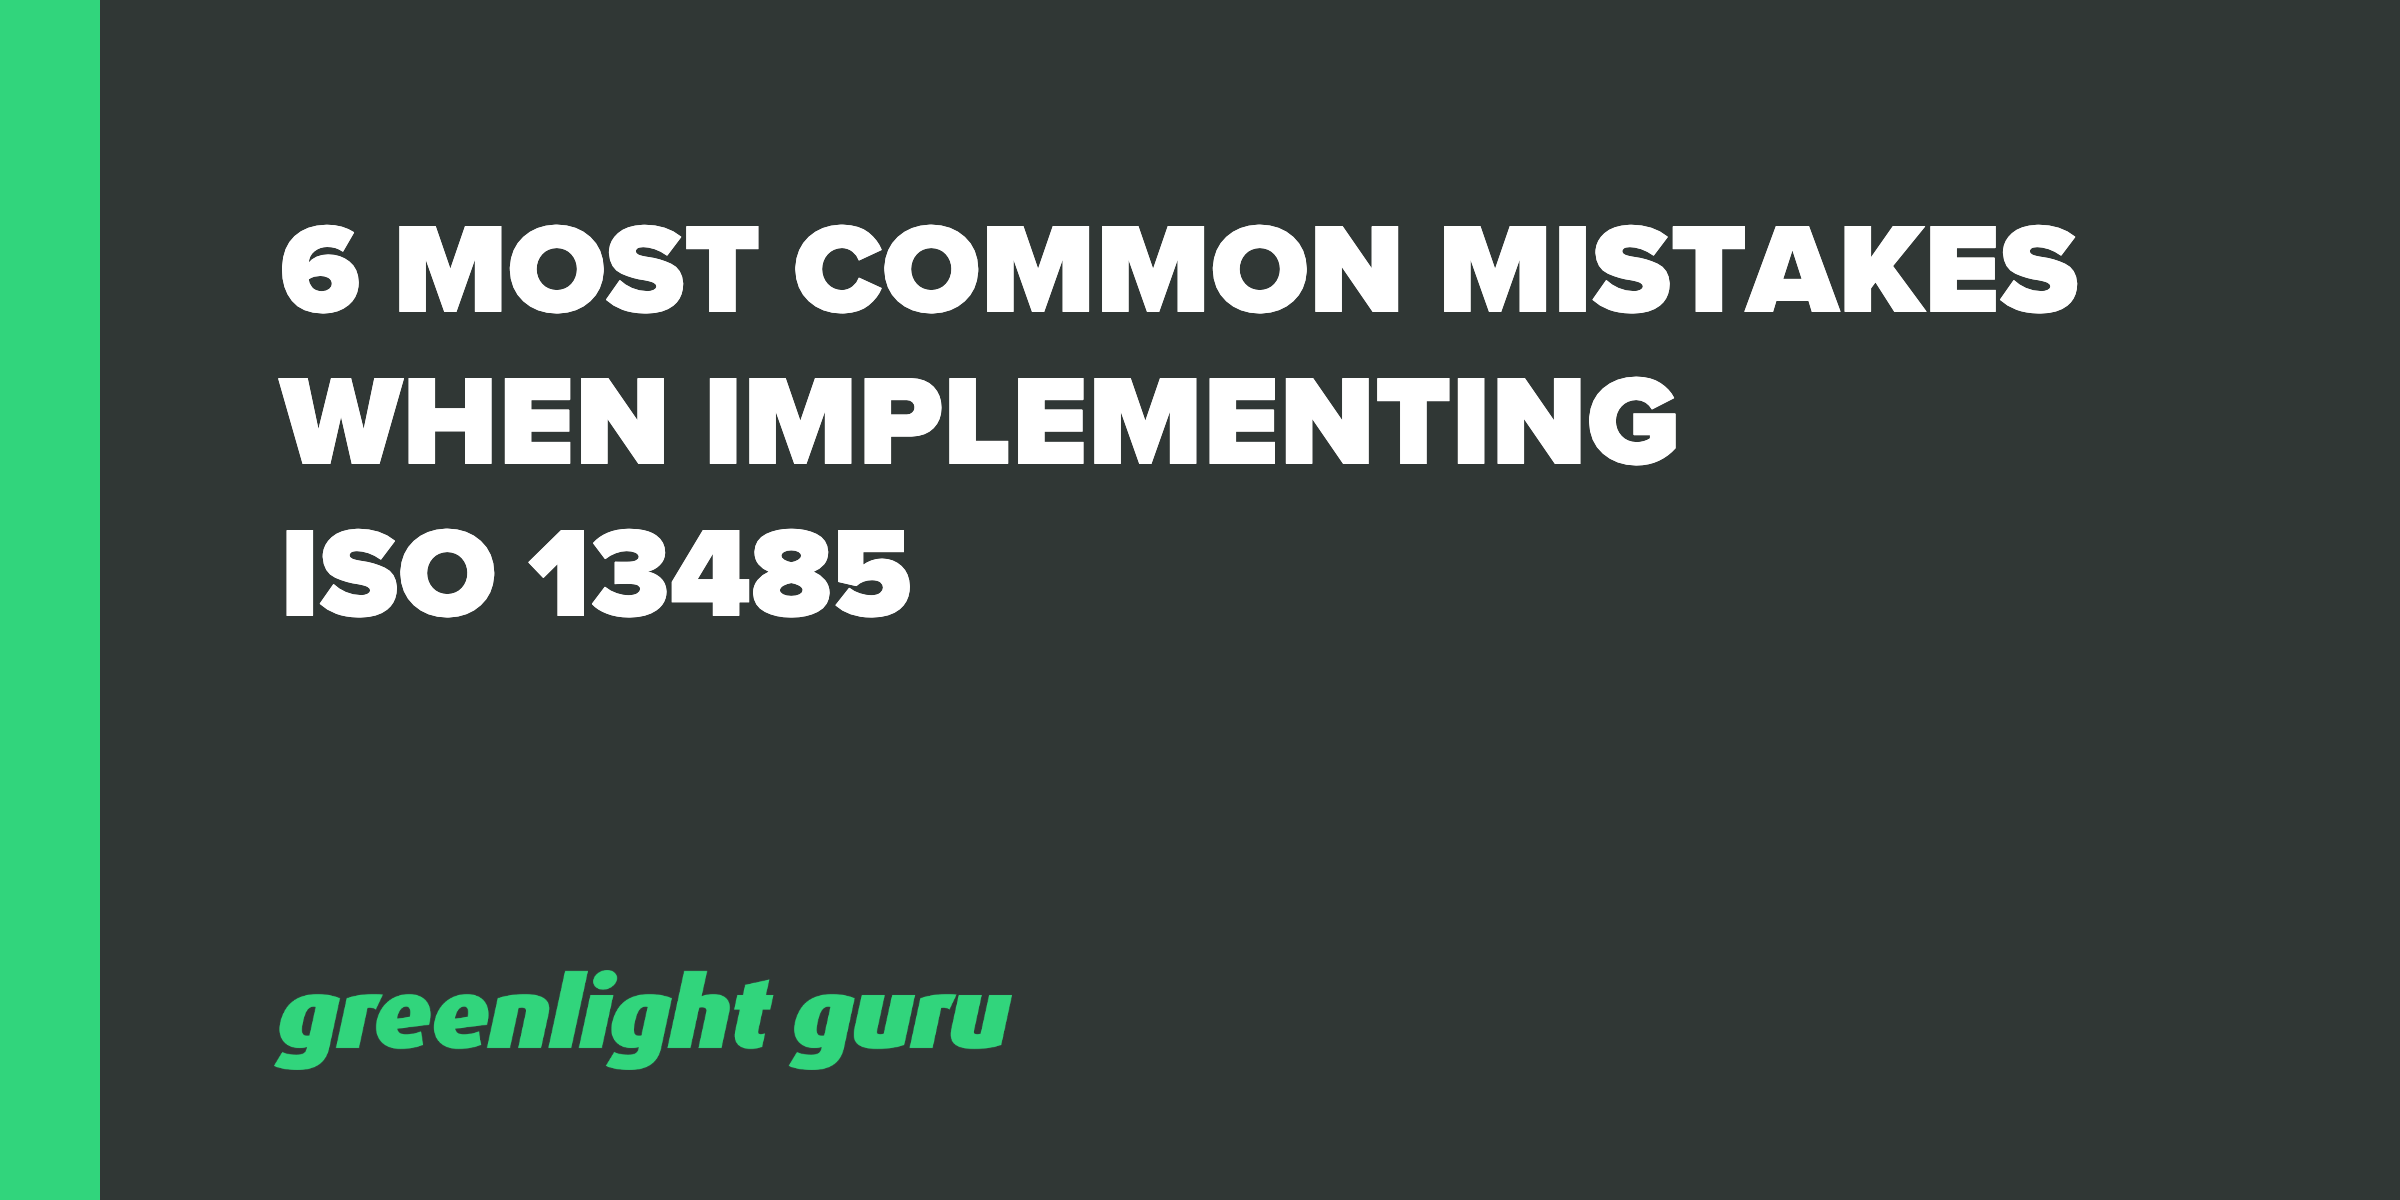 6 most common mistakes when implementing iso 13485